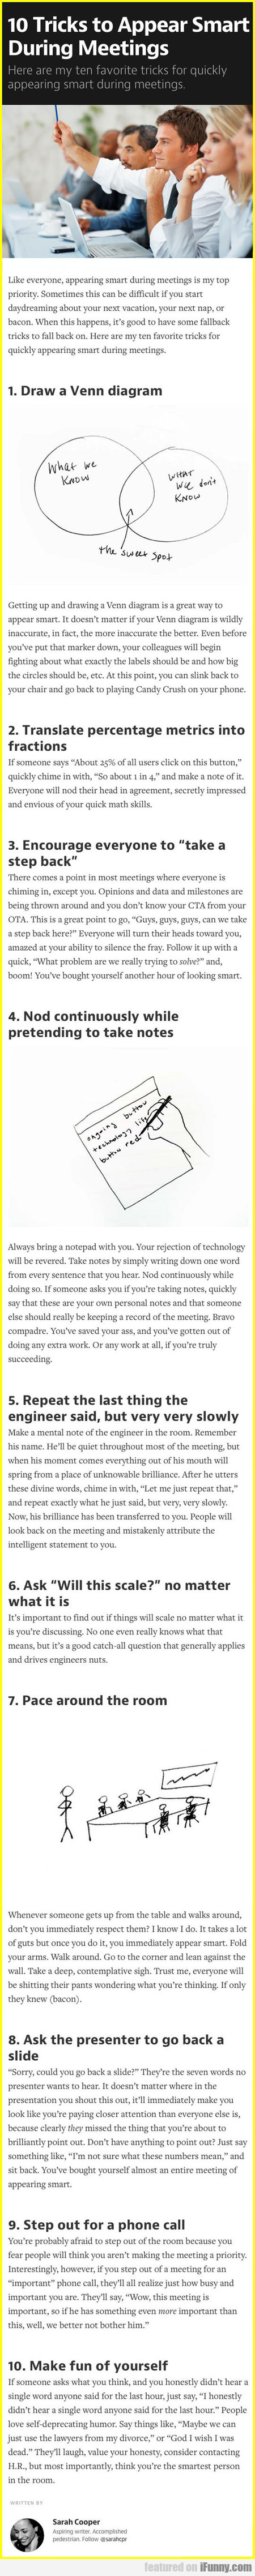 10 Tricks To Appear Smart